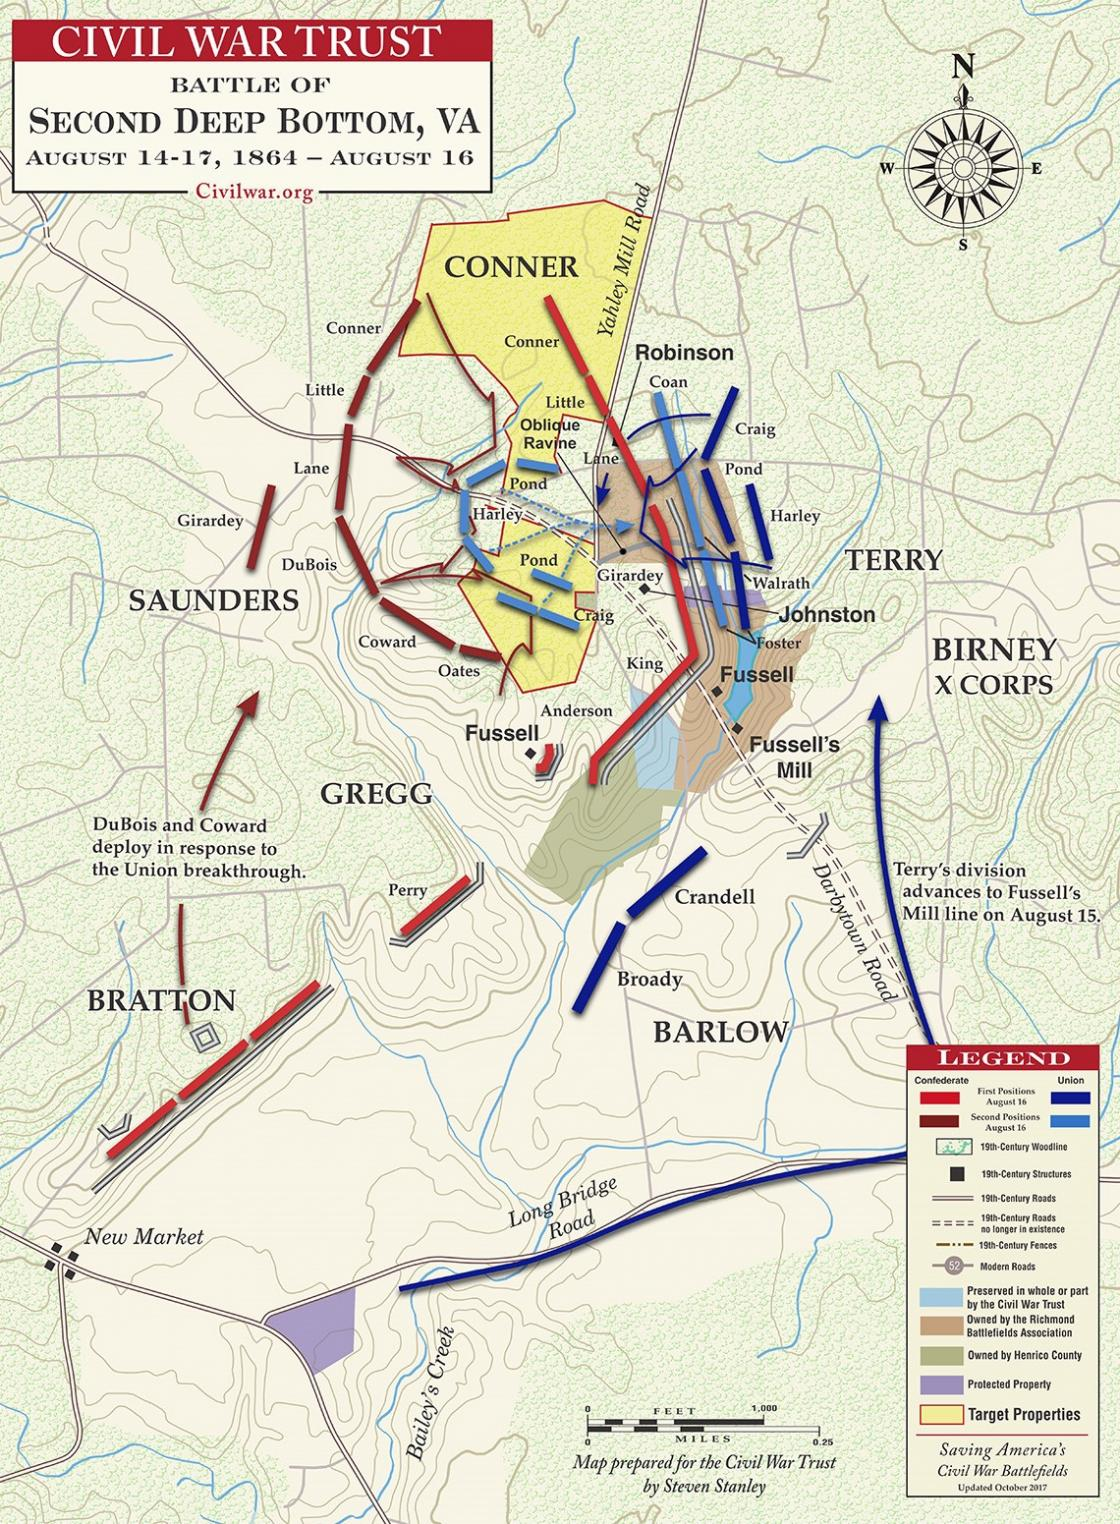 Second Deep Bottom - August 14-17, 1864 - August 16 Fighting